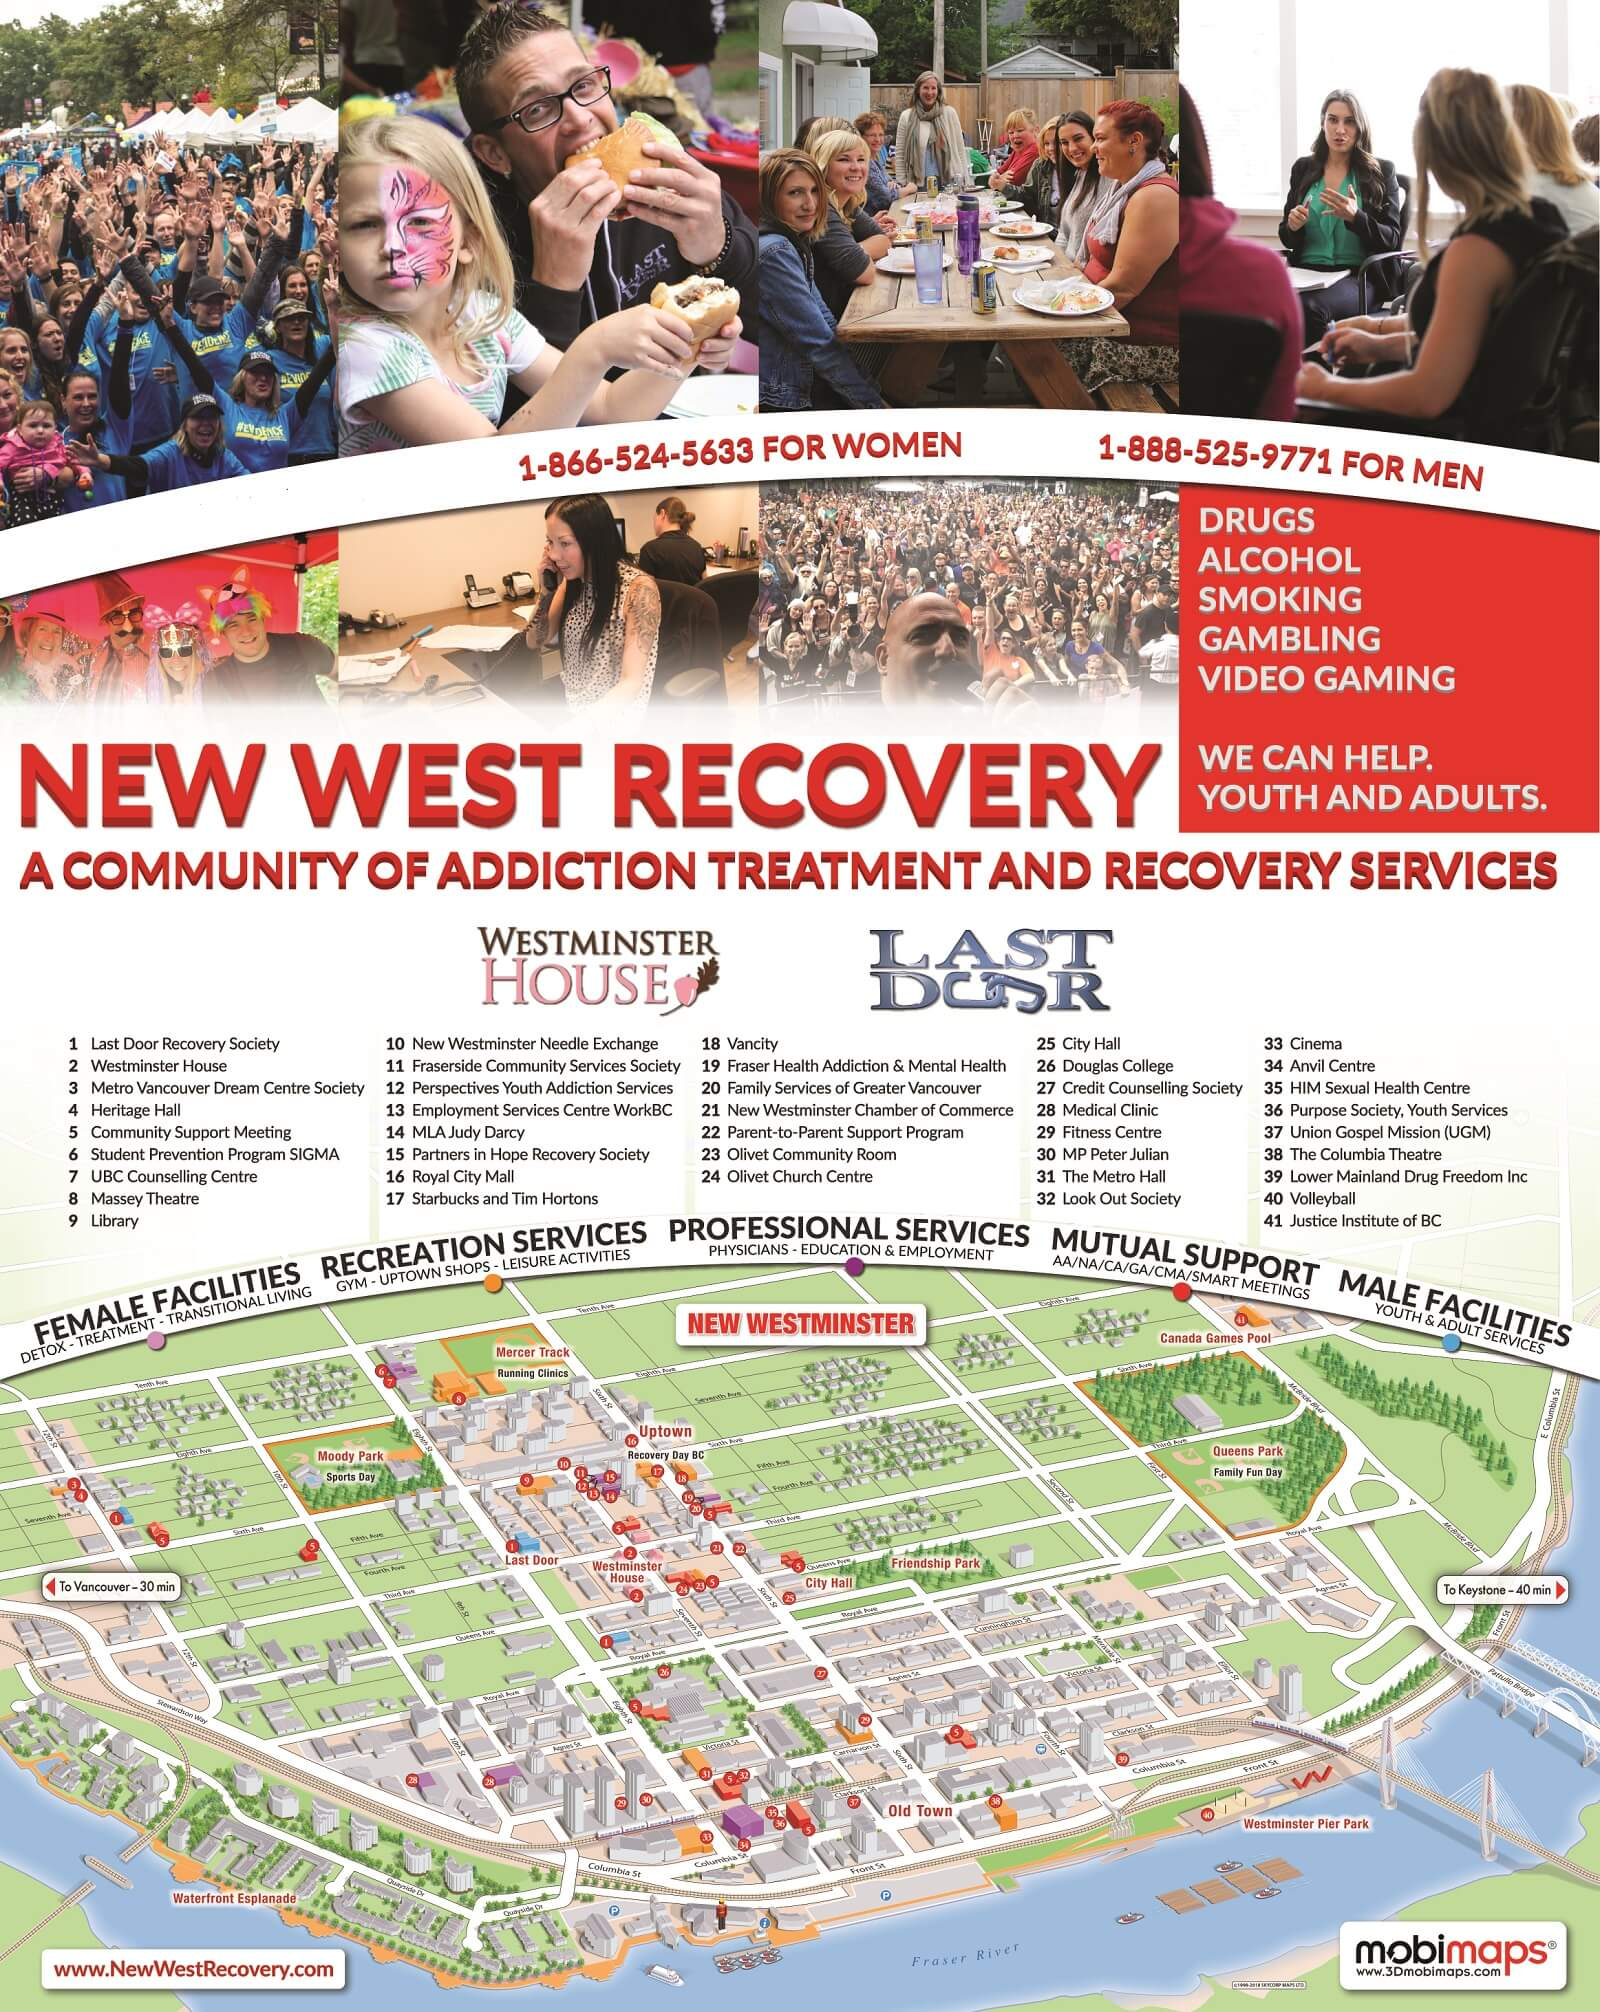 New West recovery